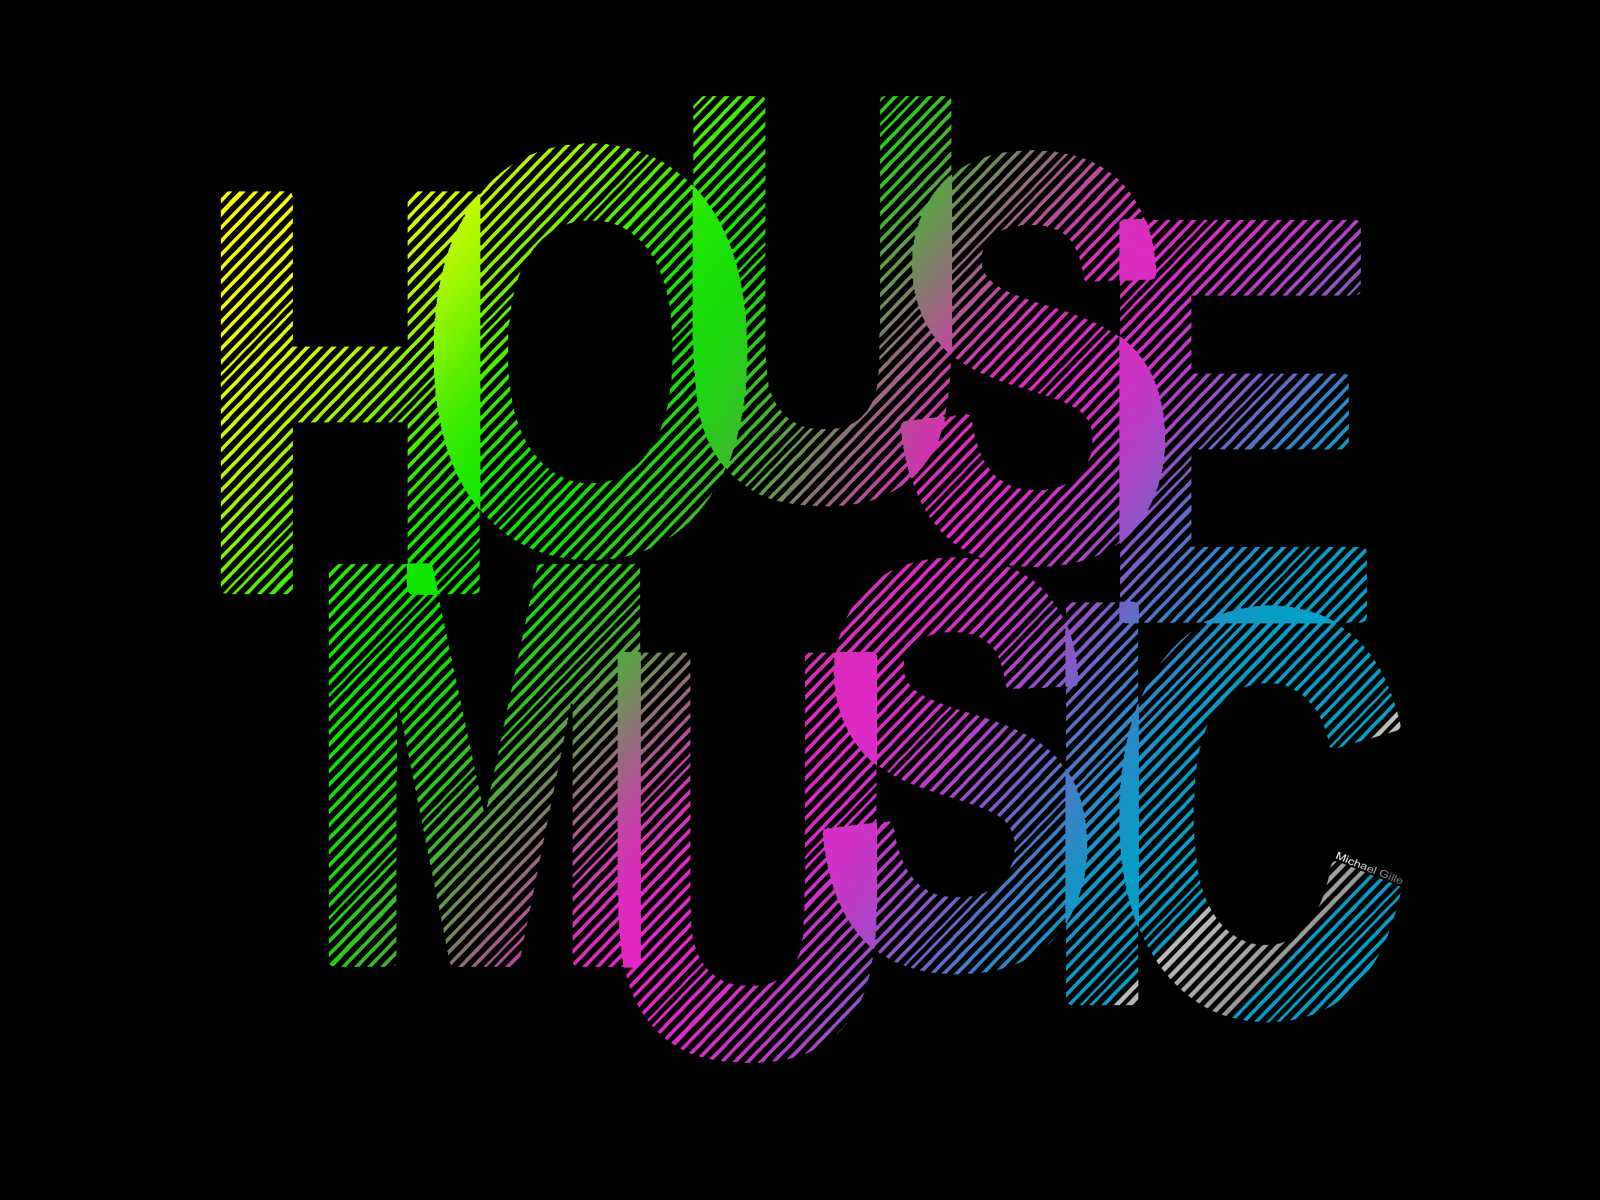 House play e musik for House music 1980